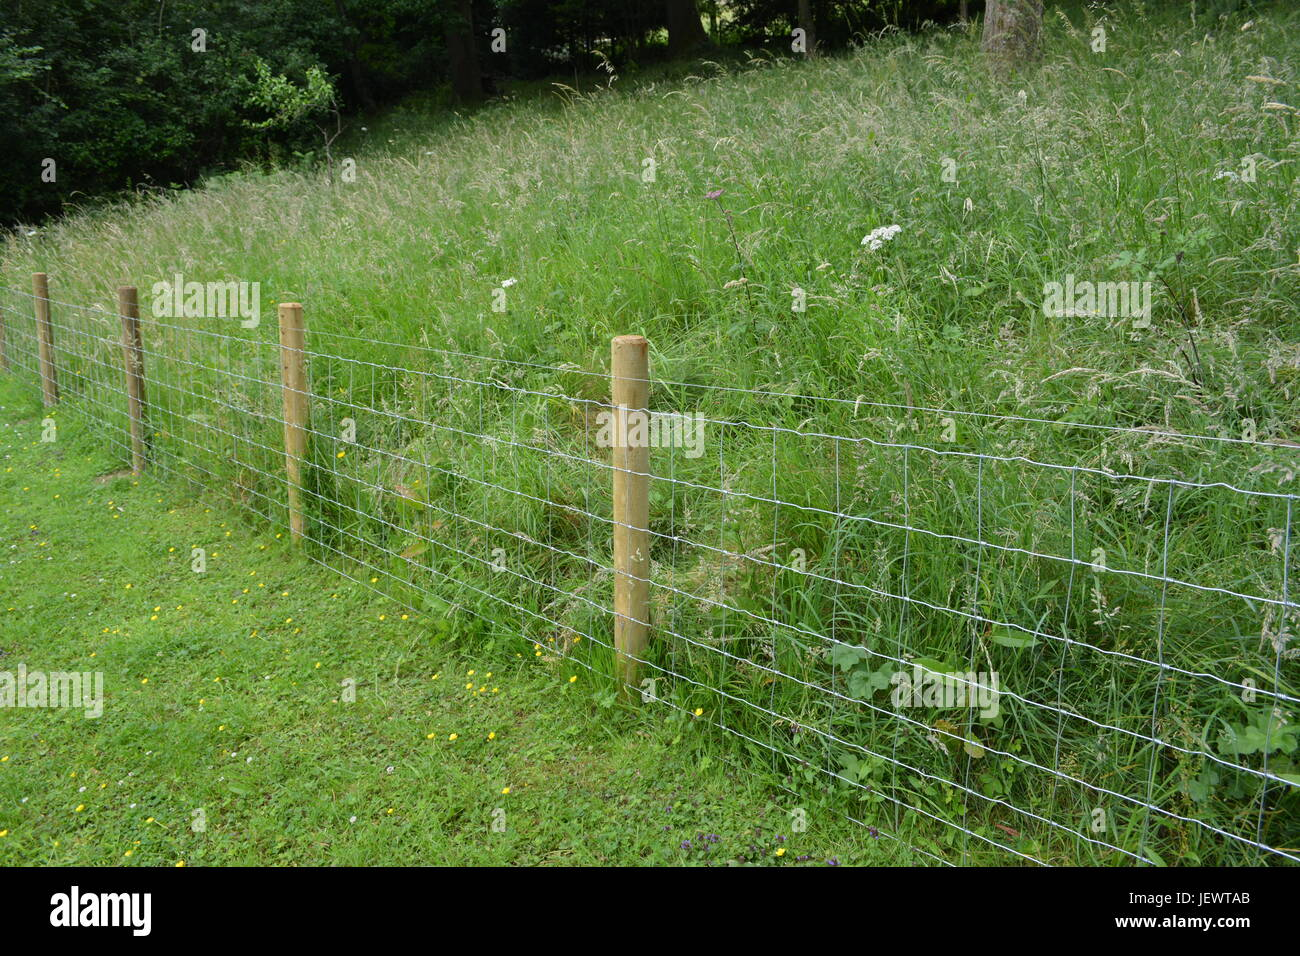 Stock Fence Stockfotos & Stock Fence Bilder Alamy